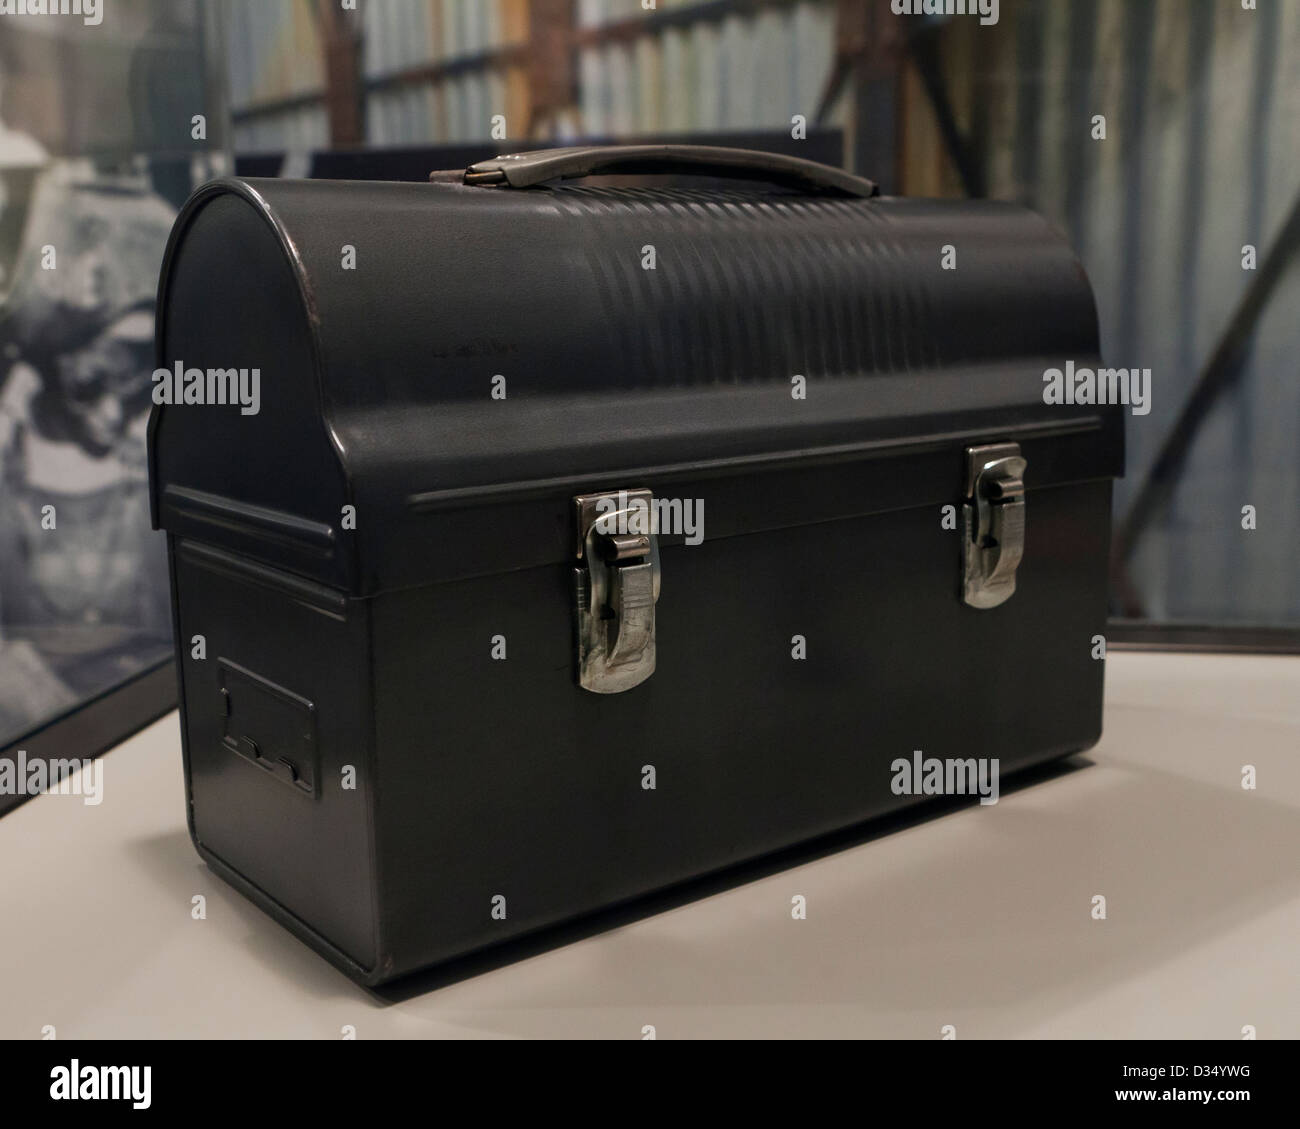 WWII era Worker's lunchbox - Stock Image